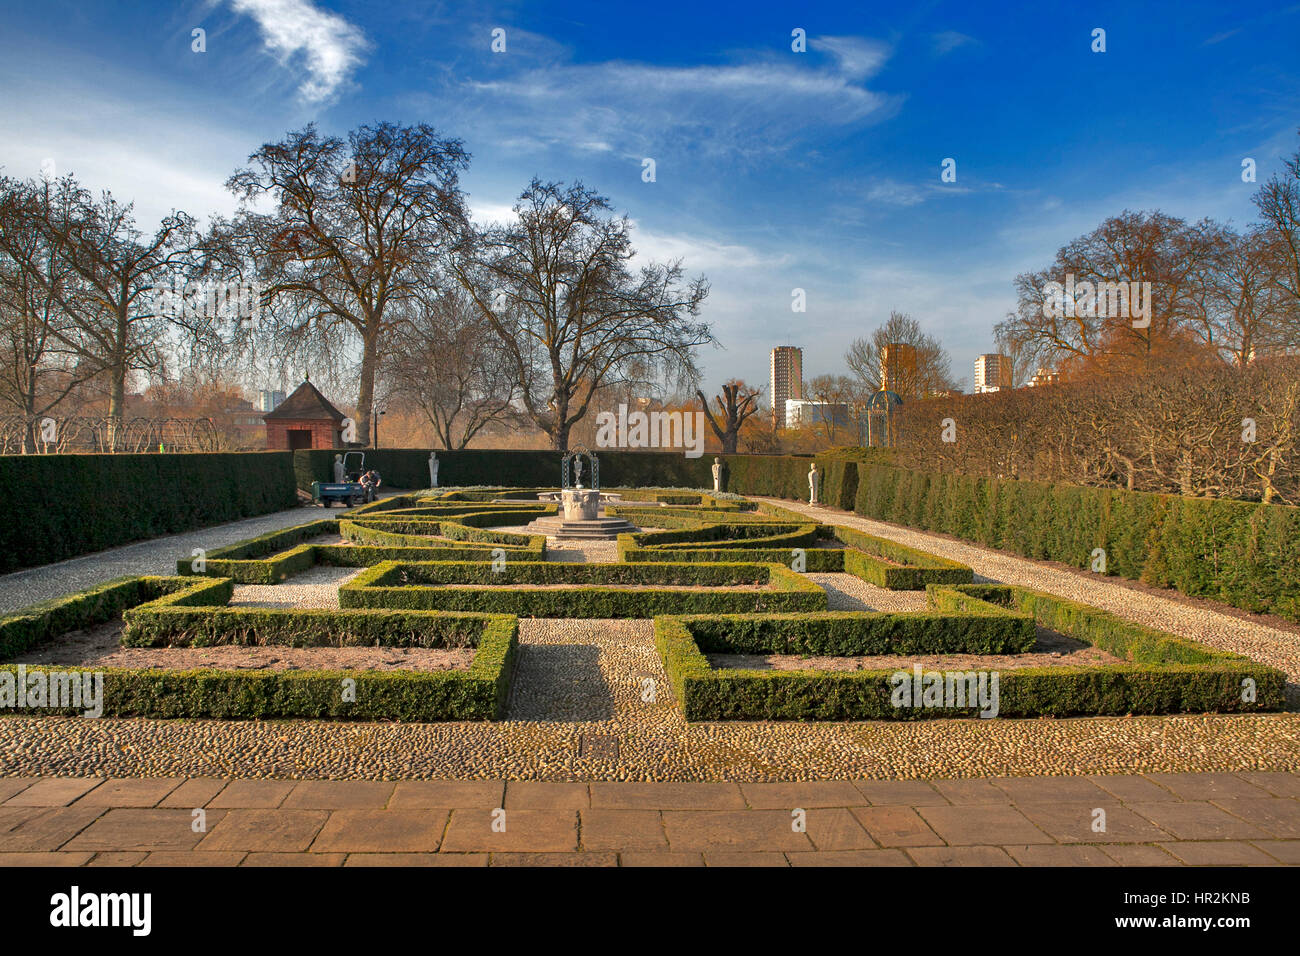 The formal Queen\'s Garden: 17th century style garden situated behind ...